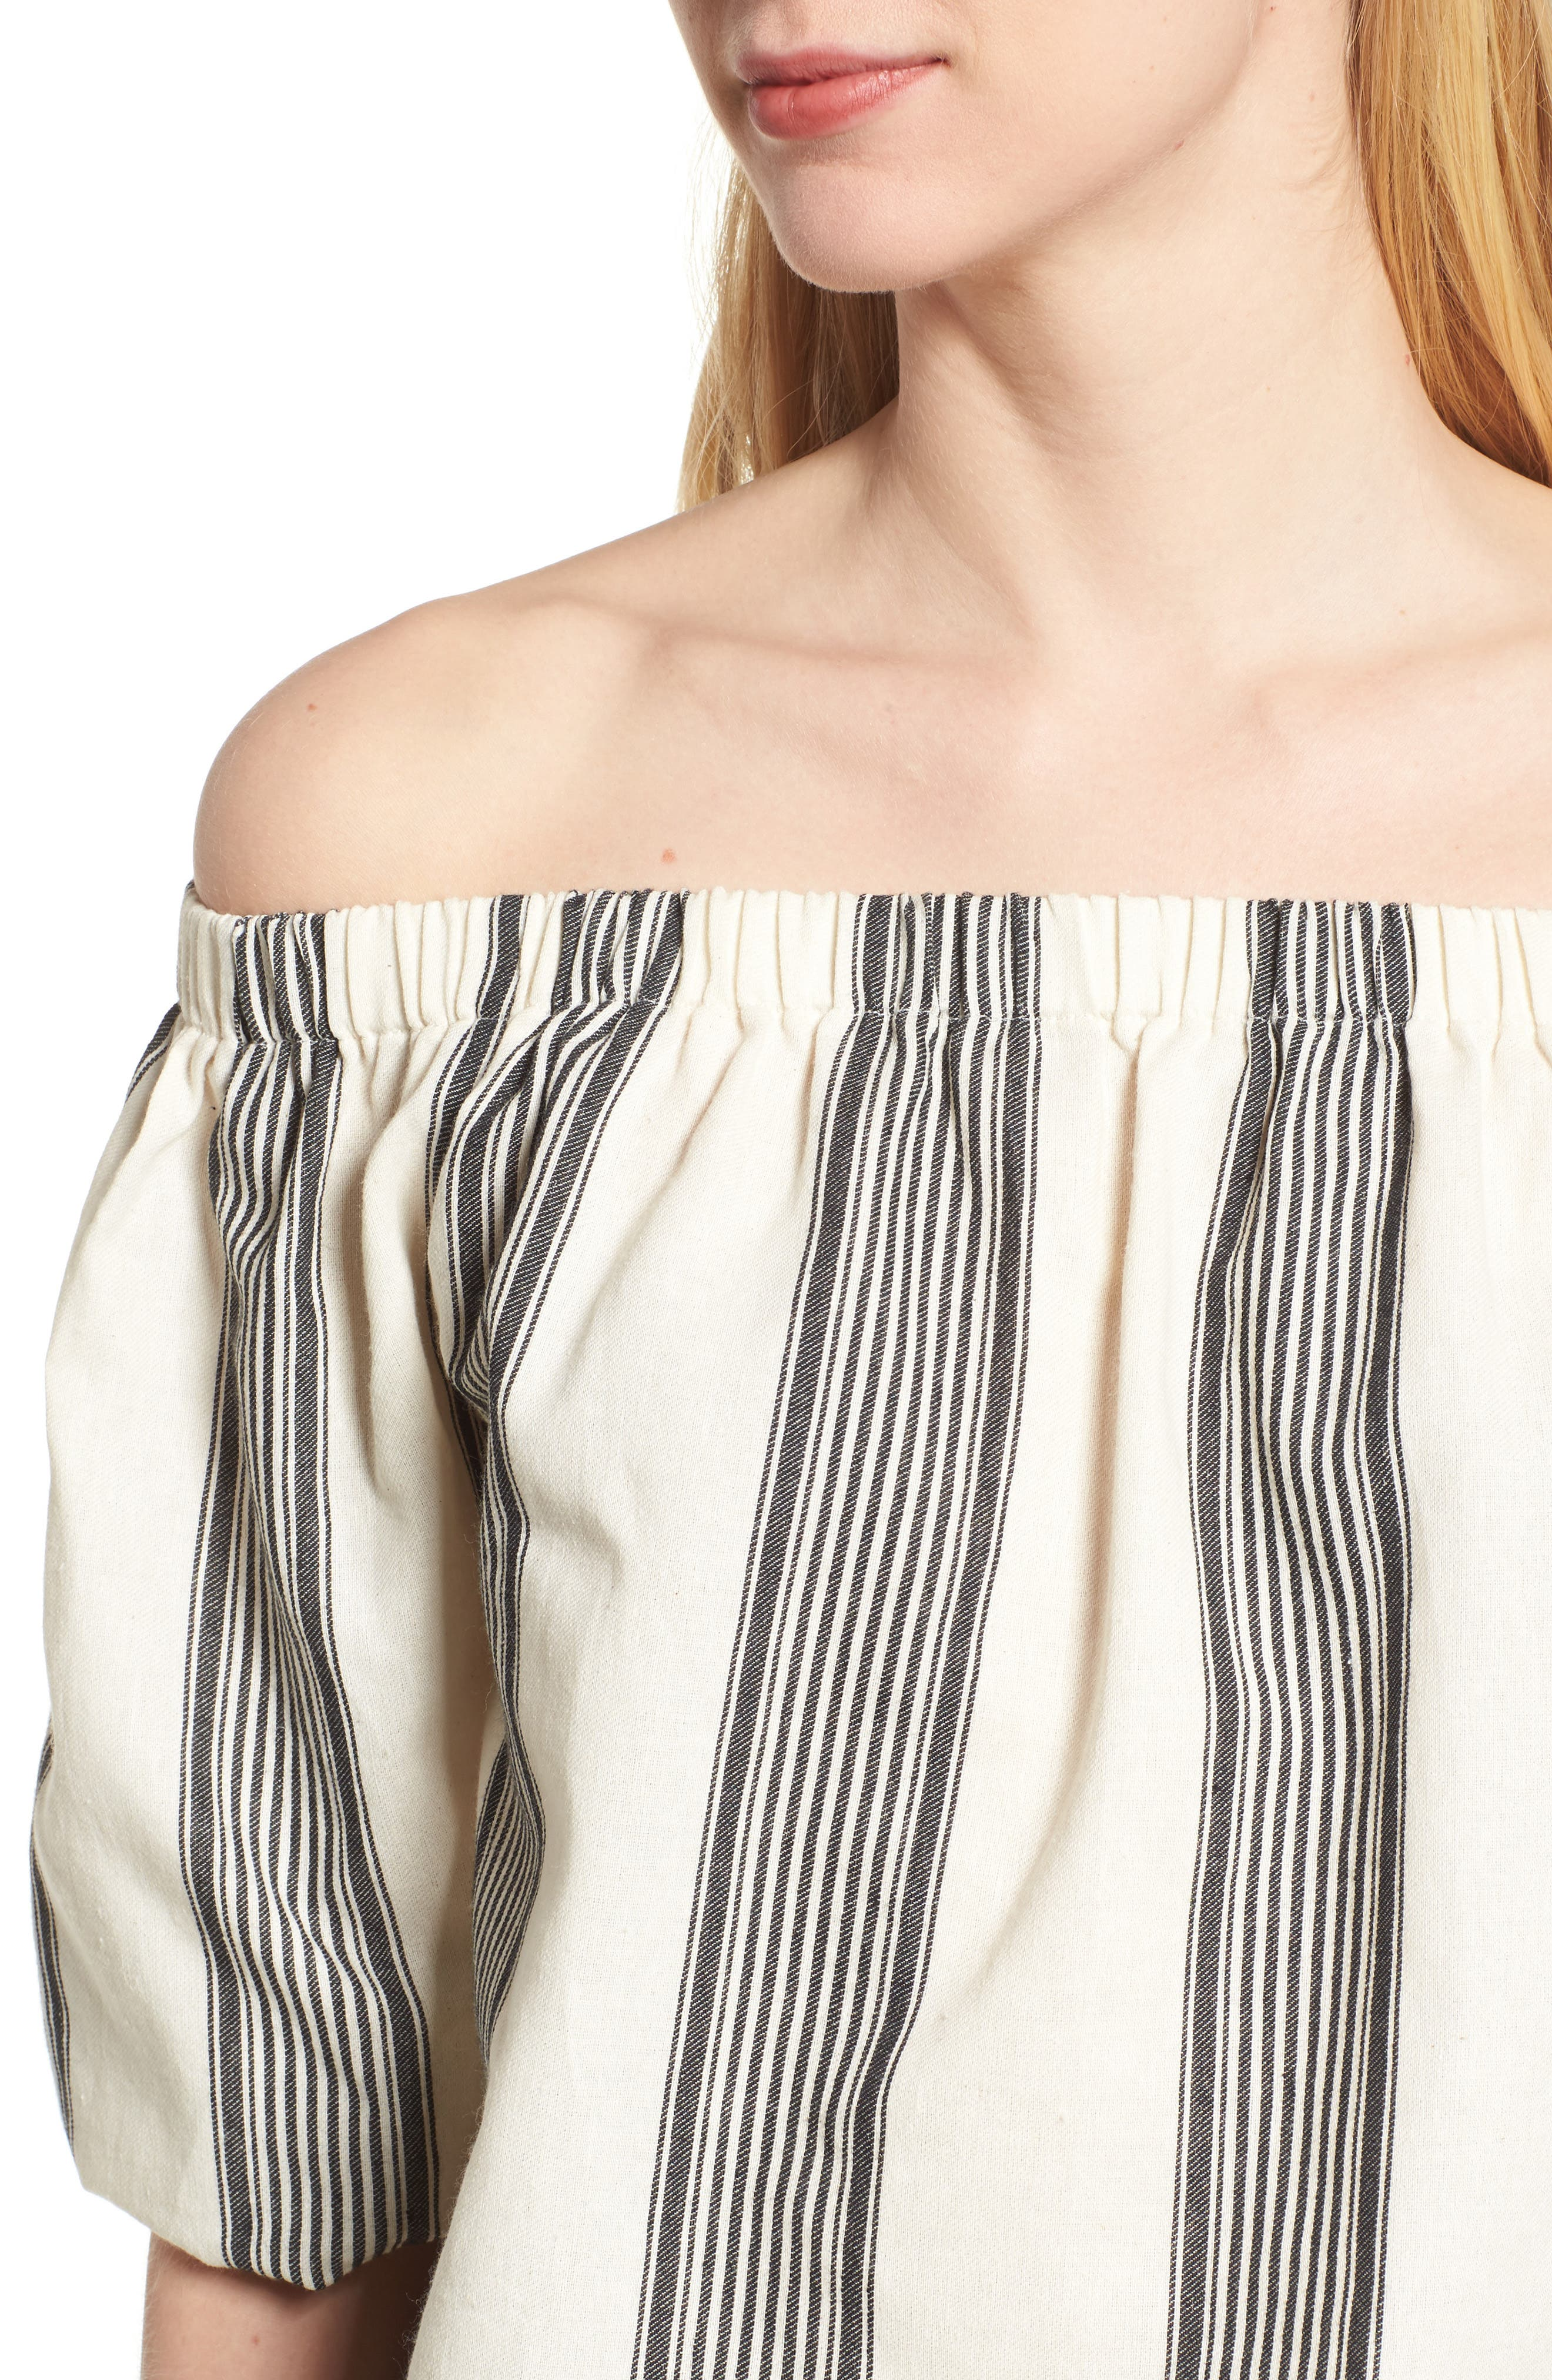 Bishop + Young Karlie Off the Shoulder Top,                             Alternate thumbnail 4, color,                             Grey Stripe